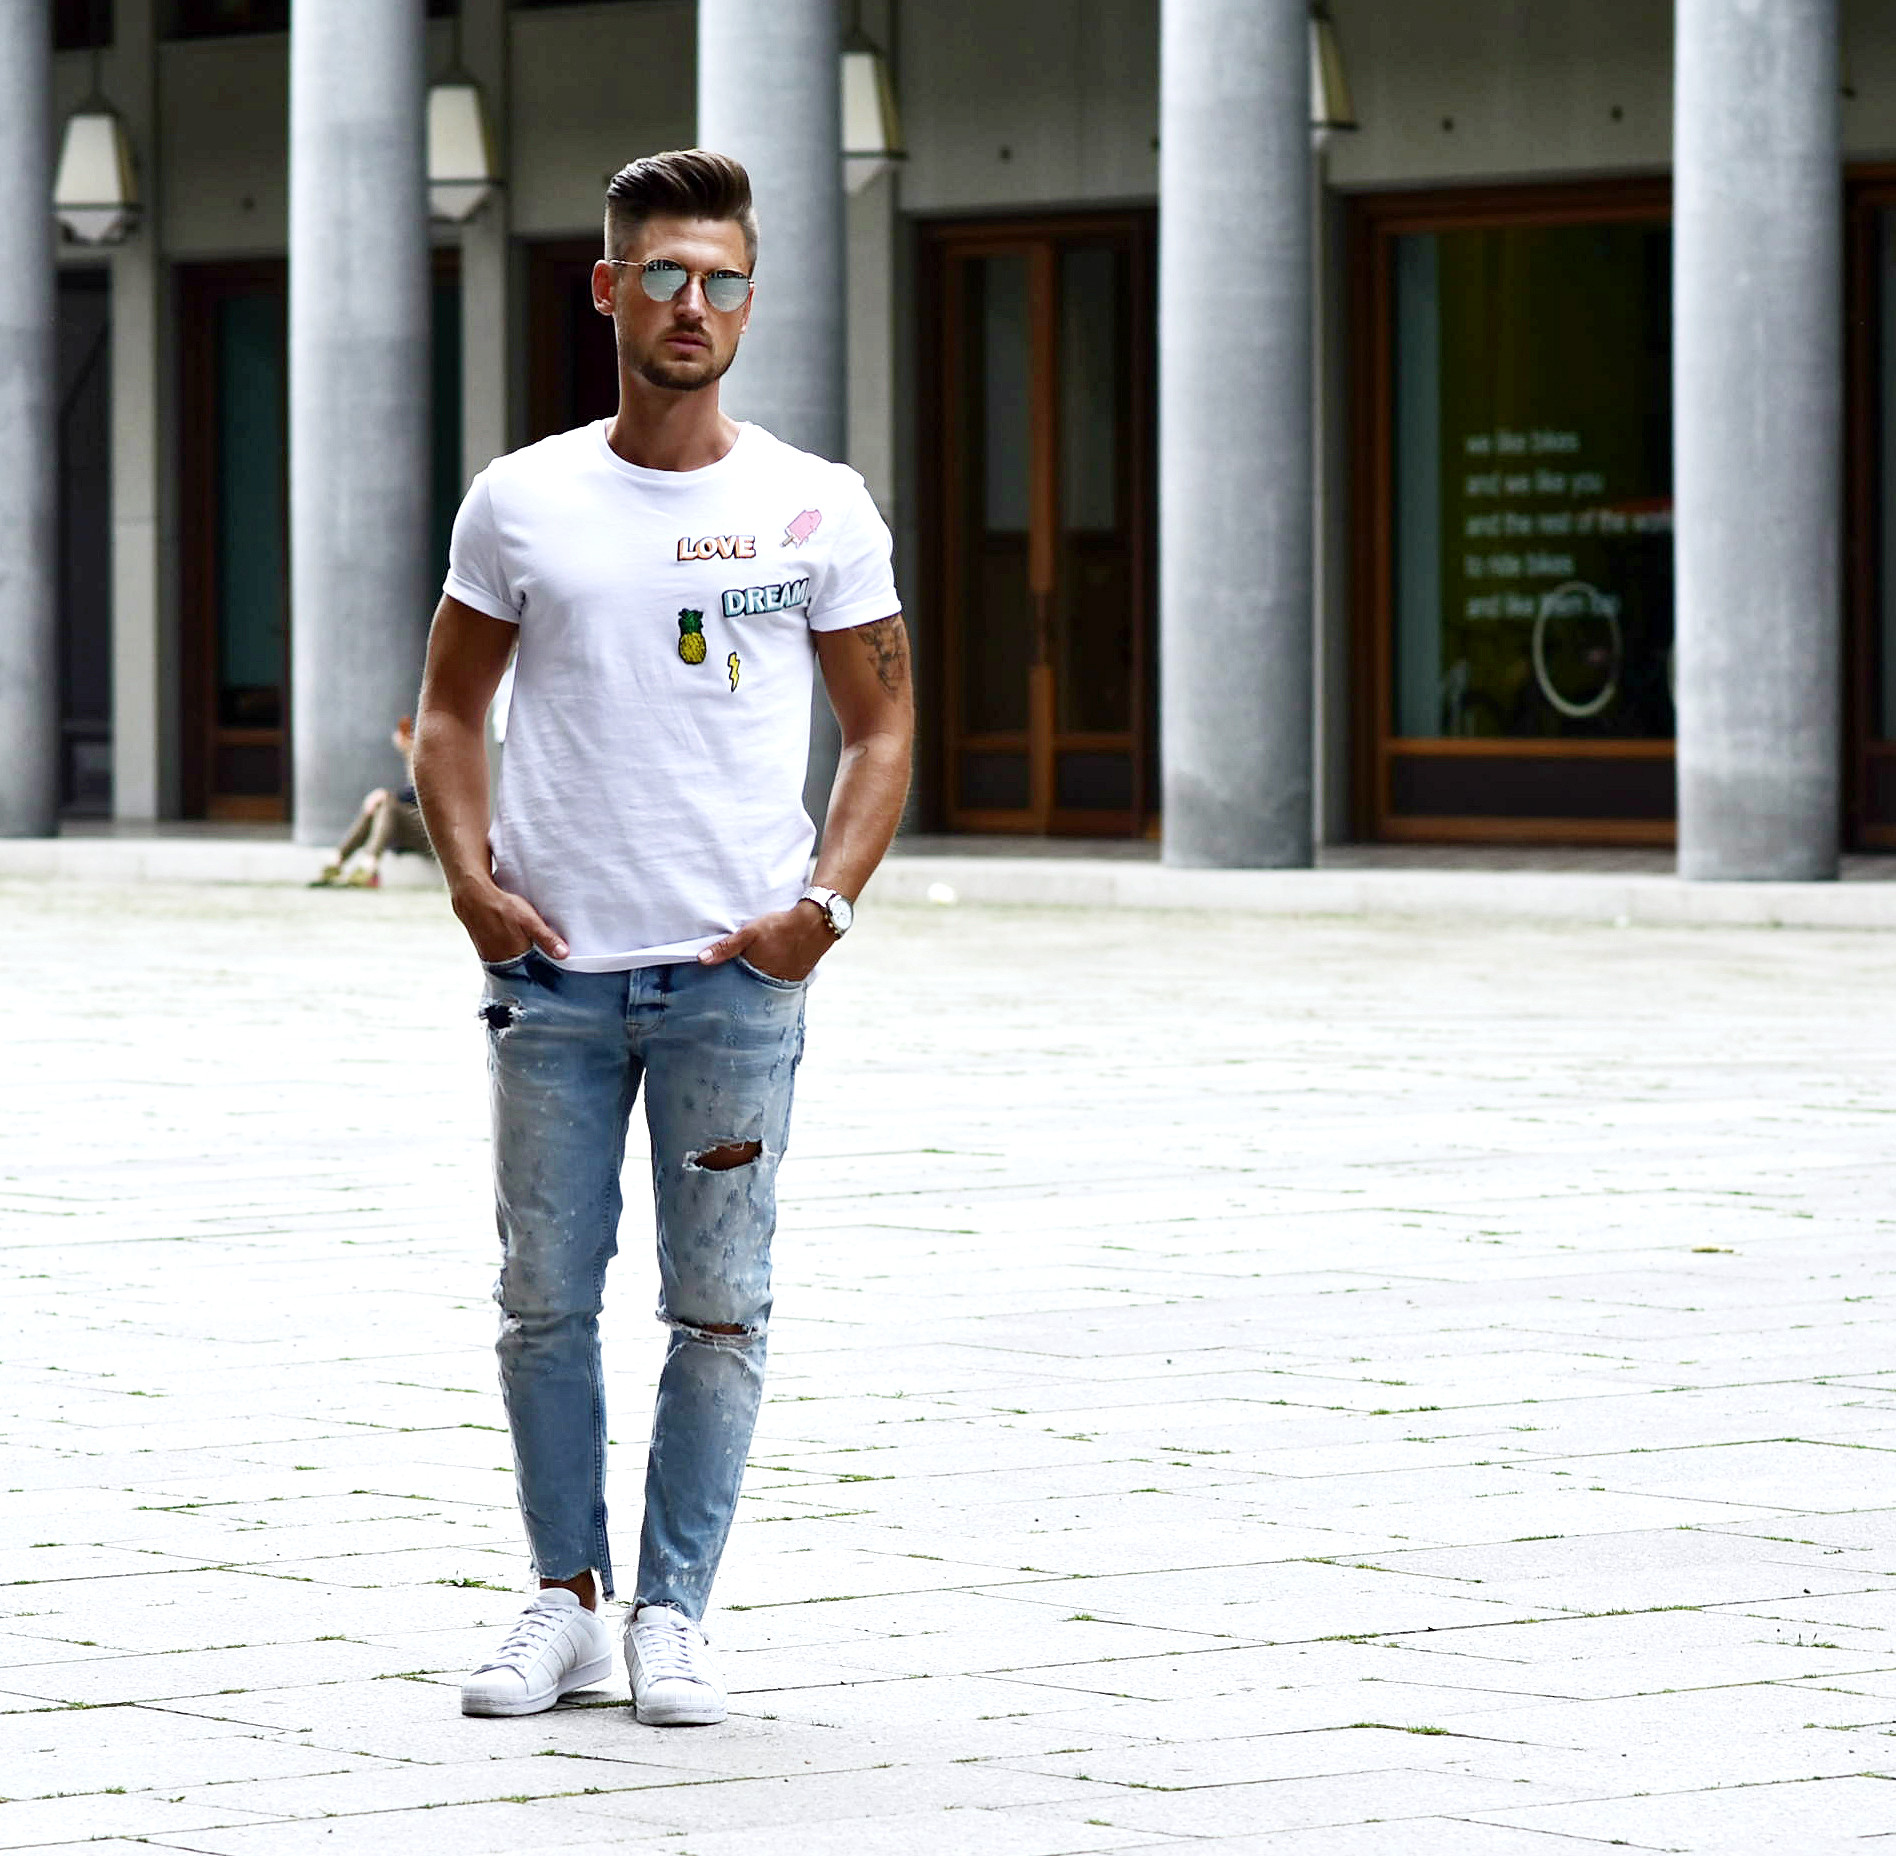 Tommeezjerry-Styleblog-Männerblog-Männer-Modeblog-Berlin-Berlinblog-Outfit-Streetlook-T-Shirt-Patches-Skinny-Jeans-Ripped-Jeans-Ray Ban-Adidas-Superstar-Triwa-Patcheslook-Patchesstyle